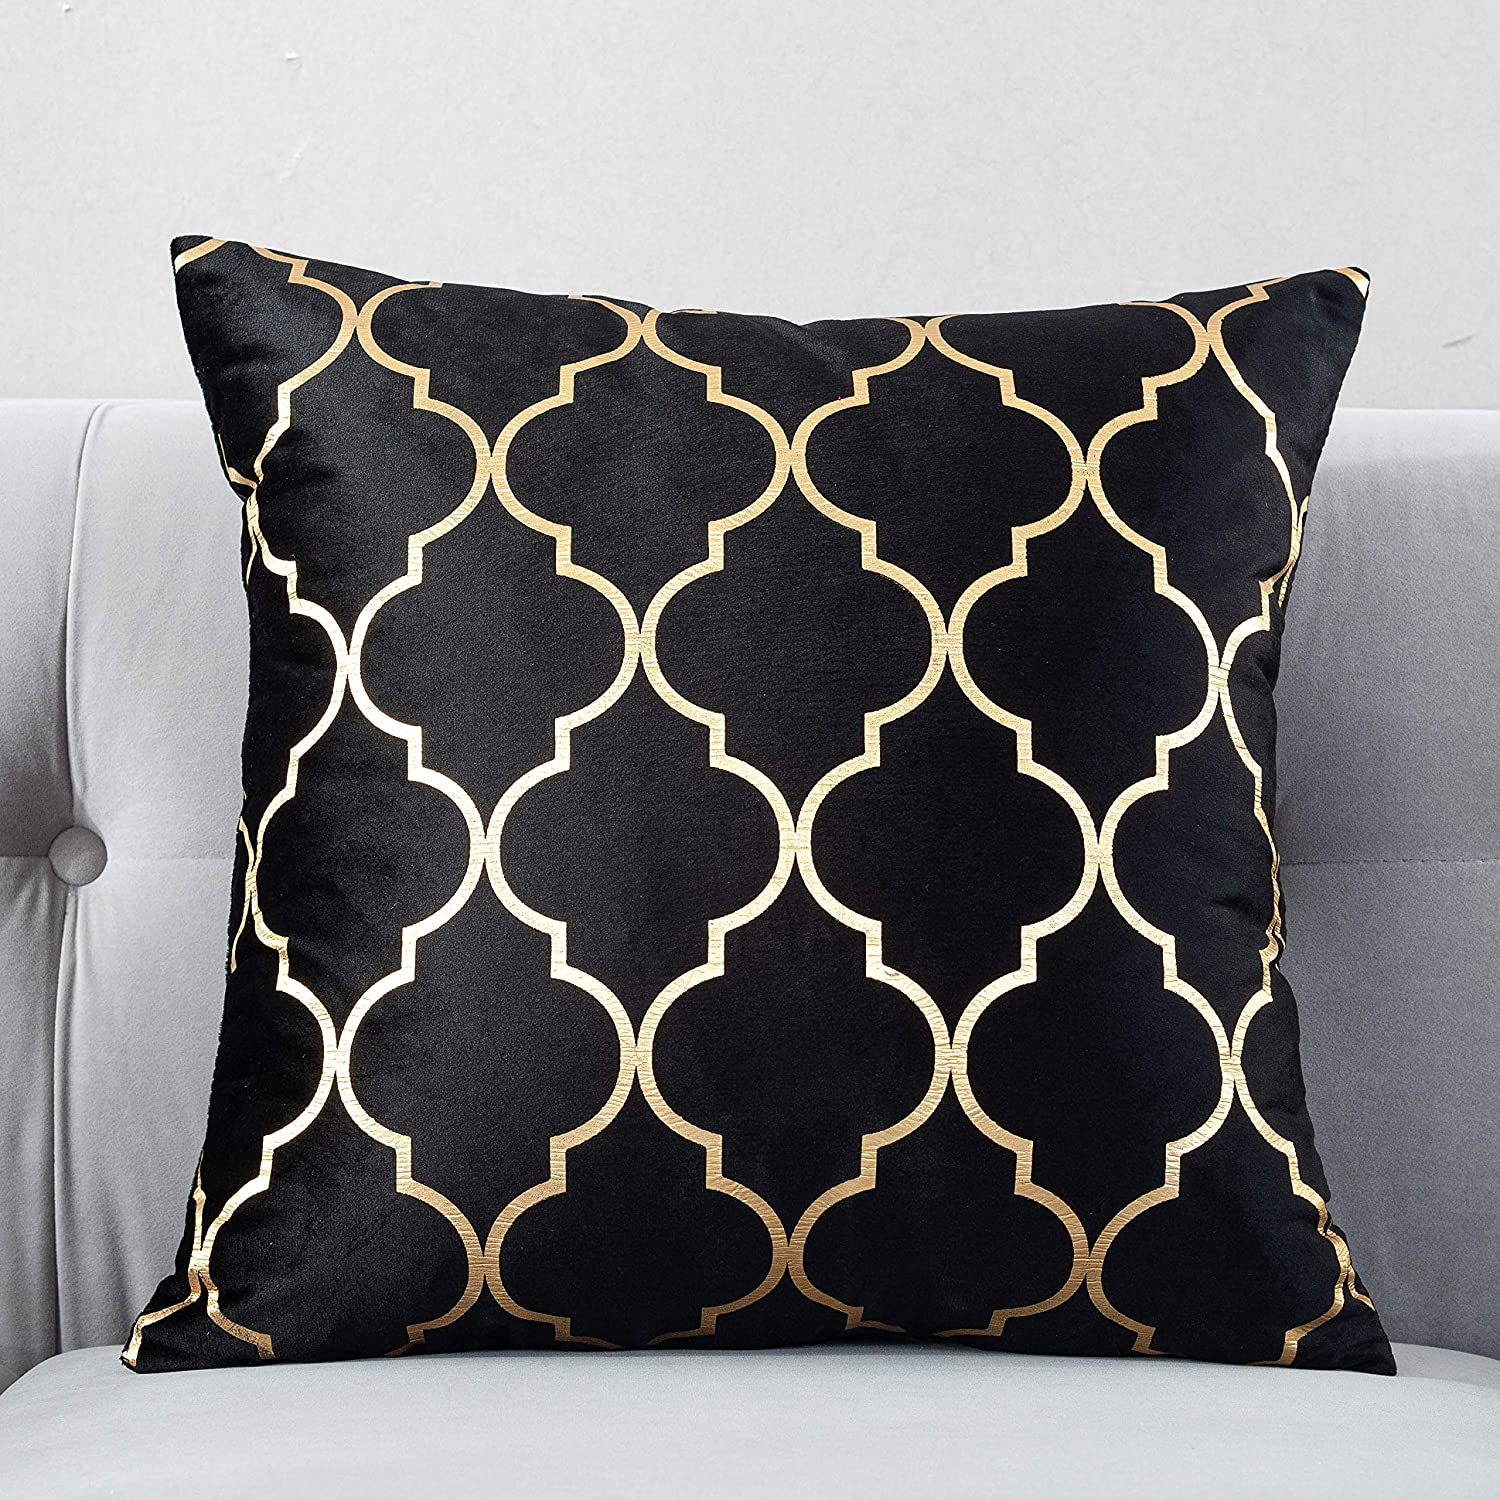 TAOSON Pack of 2,Moroccan Quatrefoil Geometric Bronzing Printed Cozy Soft Throw Pillow Cases Cushion Covers Shells for Sofa Couch Bed Home Decoration 18 x 18 Inches, Black and Gold